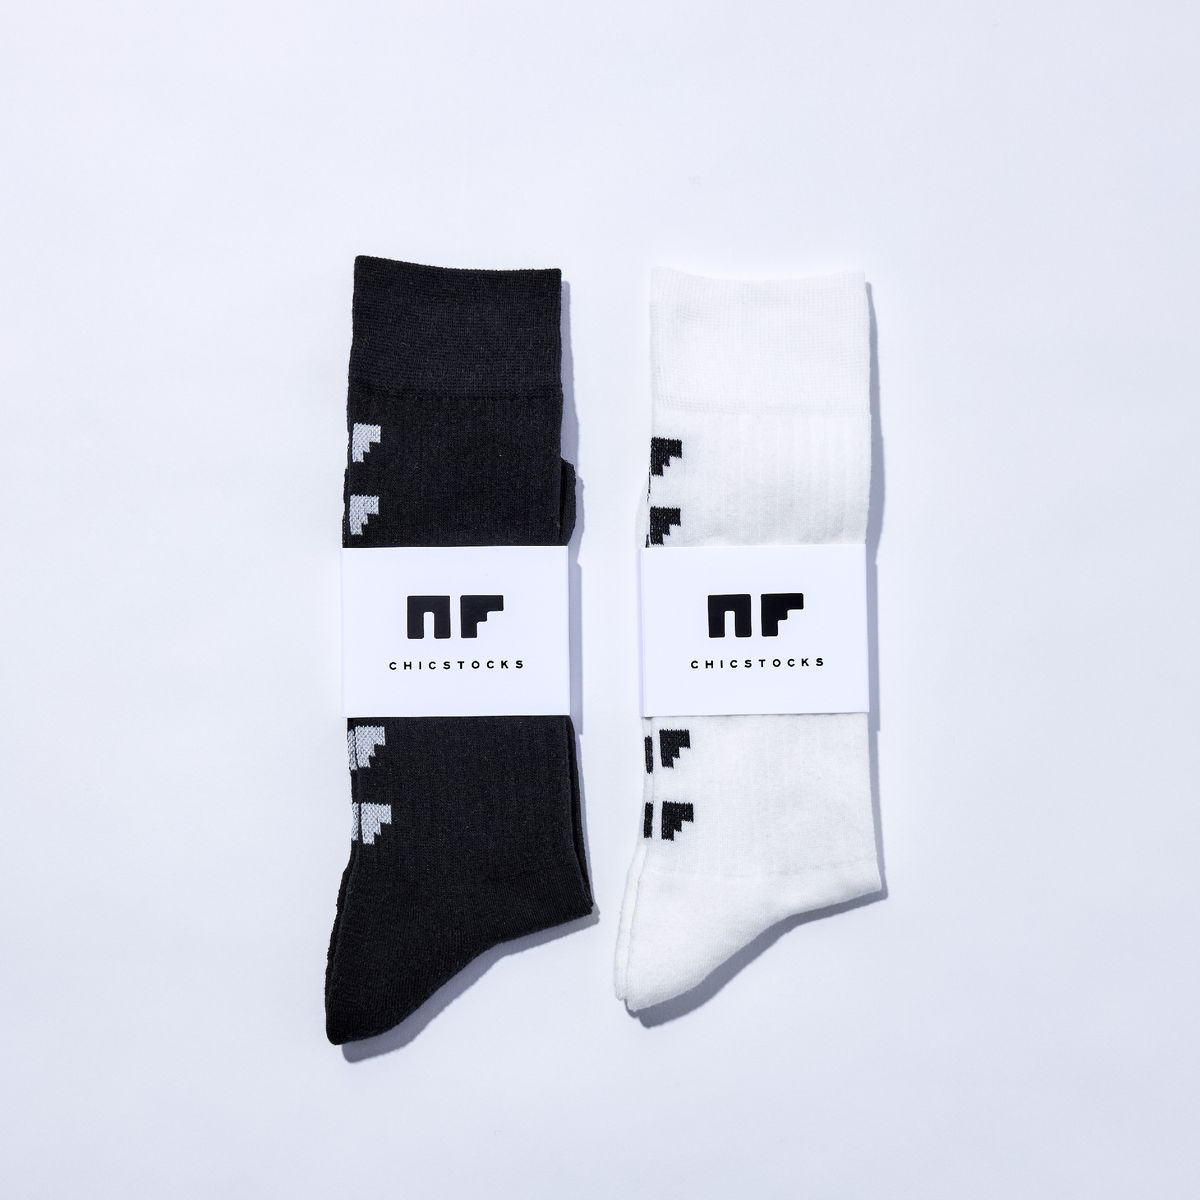 CHICSTOCKS × NF SOCKS SET